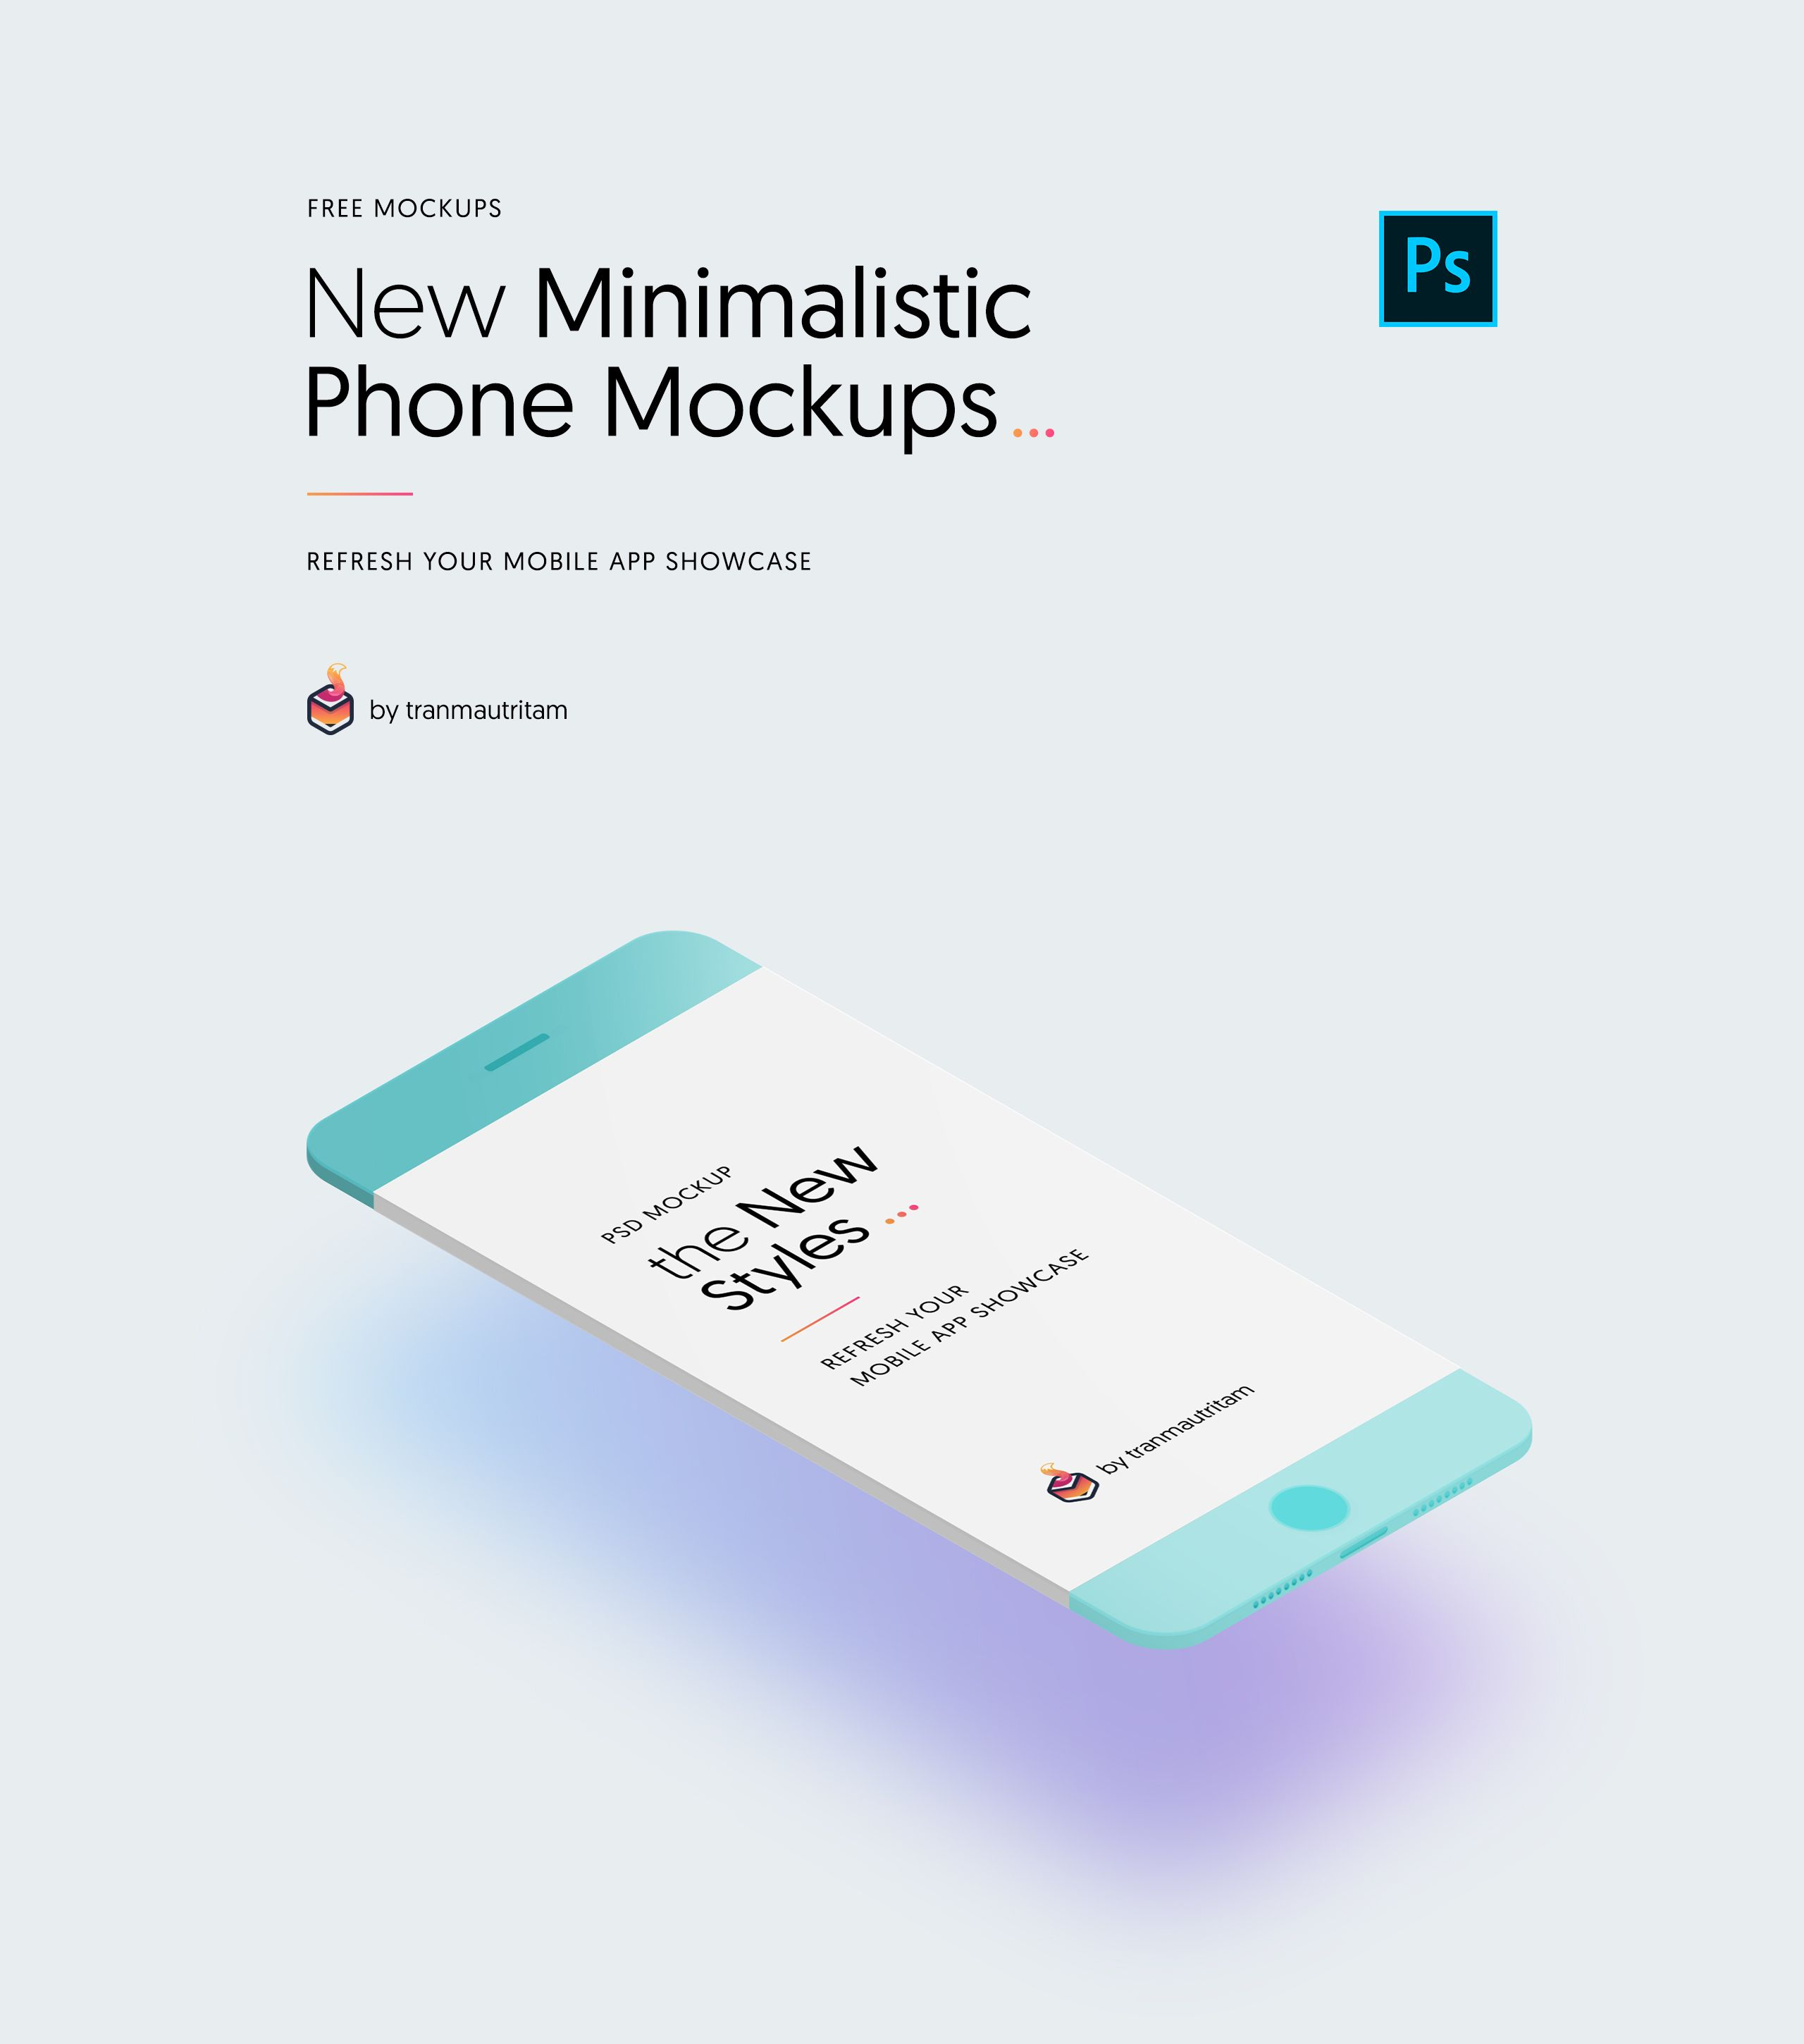 The Free New Minimalistic Phone Mockups Is The Perfectly Psd Mockups That You Can Use In Photoshop To Present Your Mo Phone Mockup Iphone Mockup Web App Design